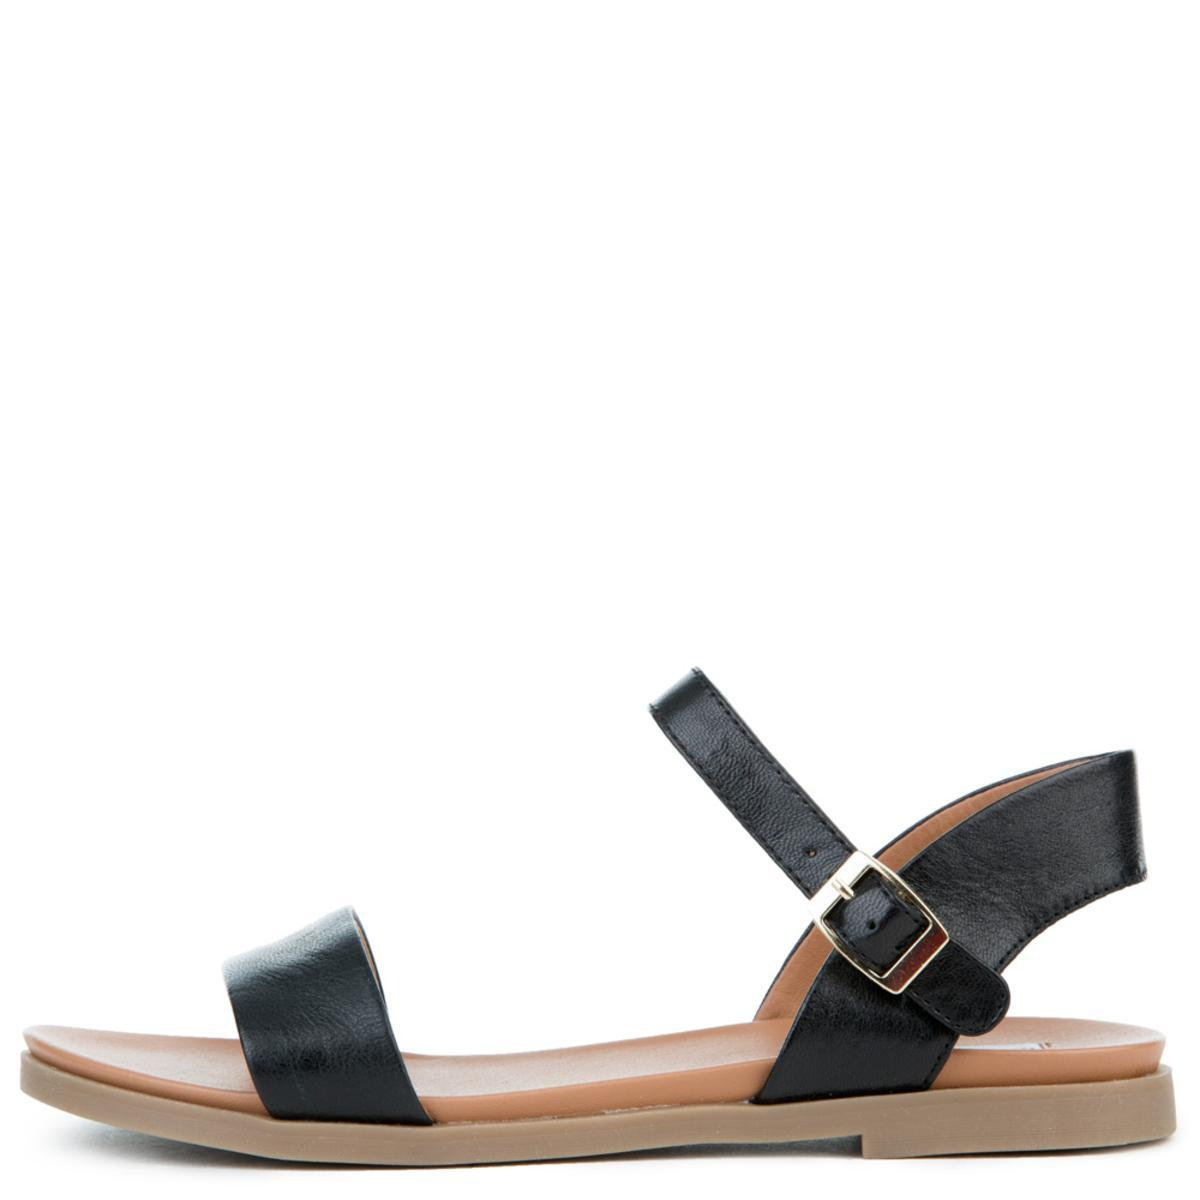 Women's Dina Black Leather Sandals